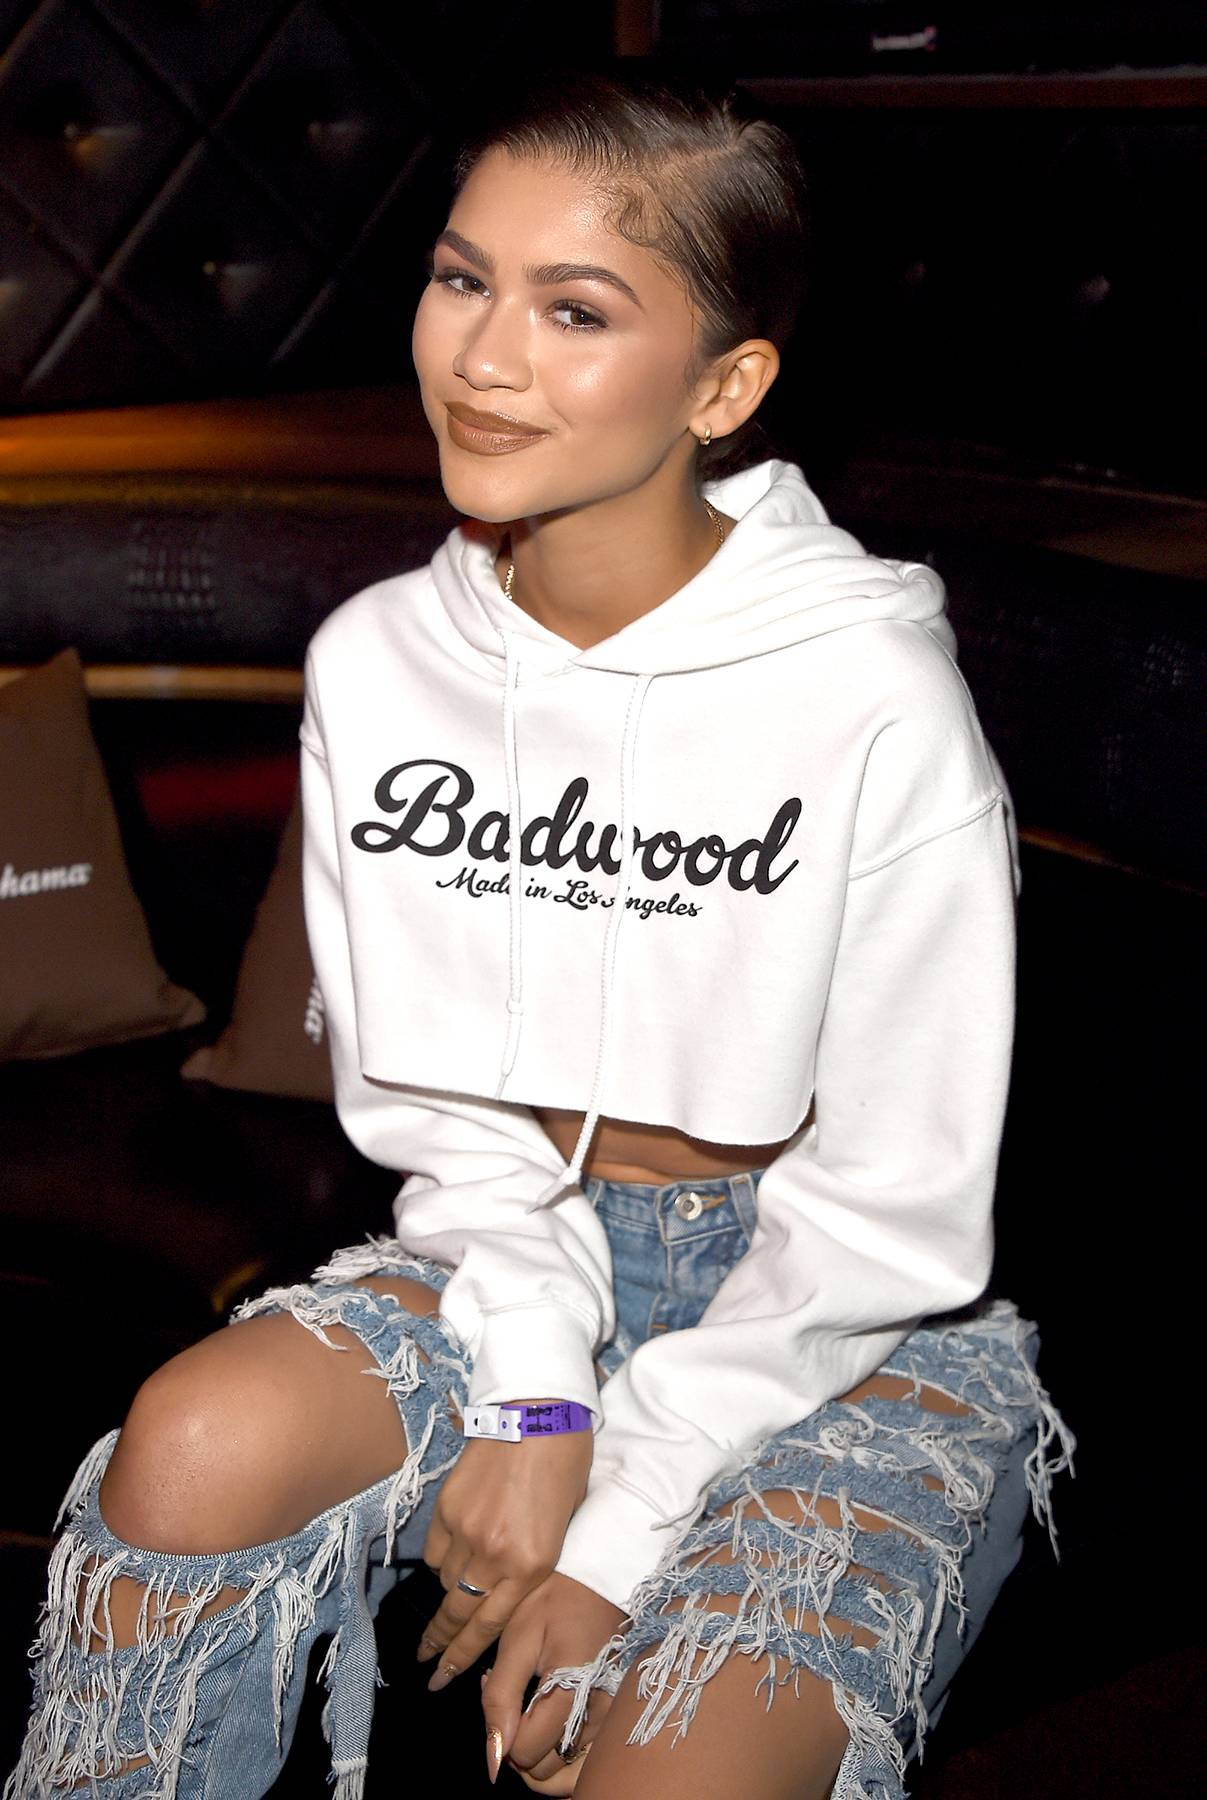 10 Reasons Zendaya's Too Fabulous to Get Punk'd - It's that time of the week again where celebs get tortured in the finniest ways.(Photo: Jason Merritt/Getty Images for Tommy Bahama)